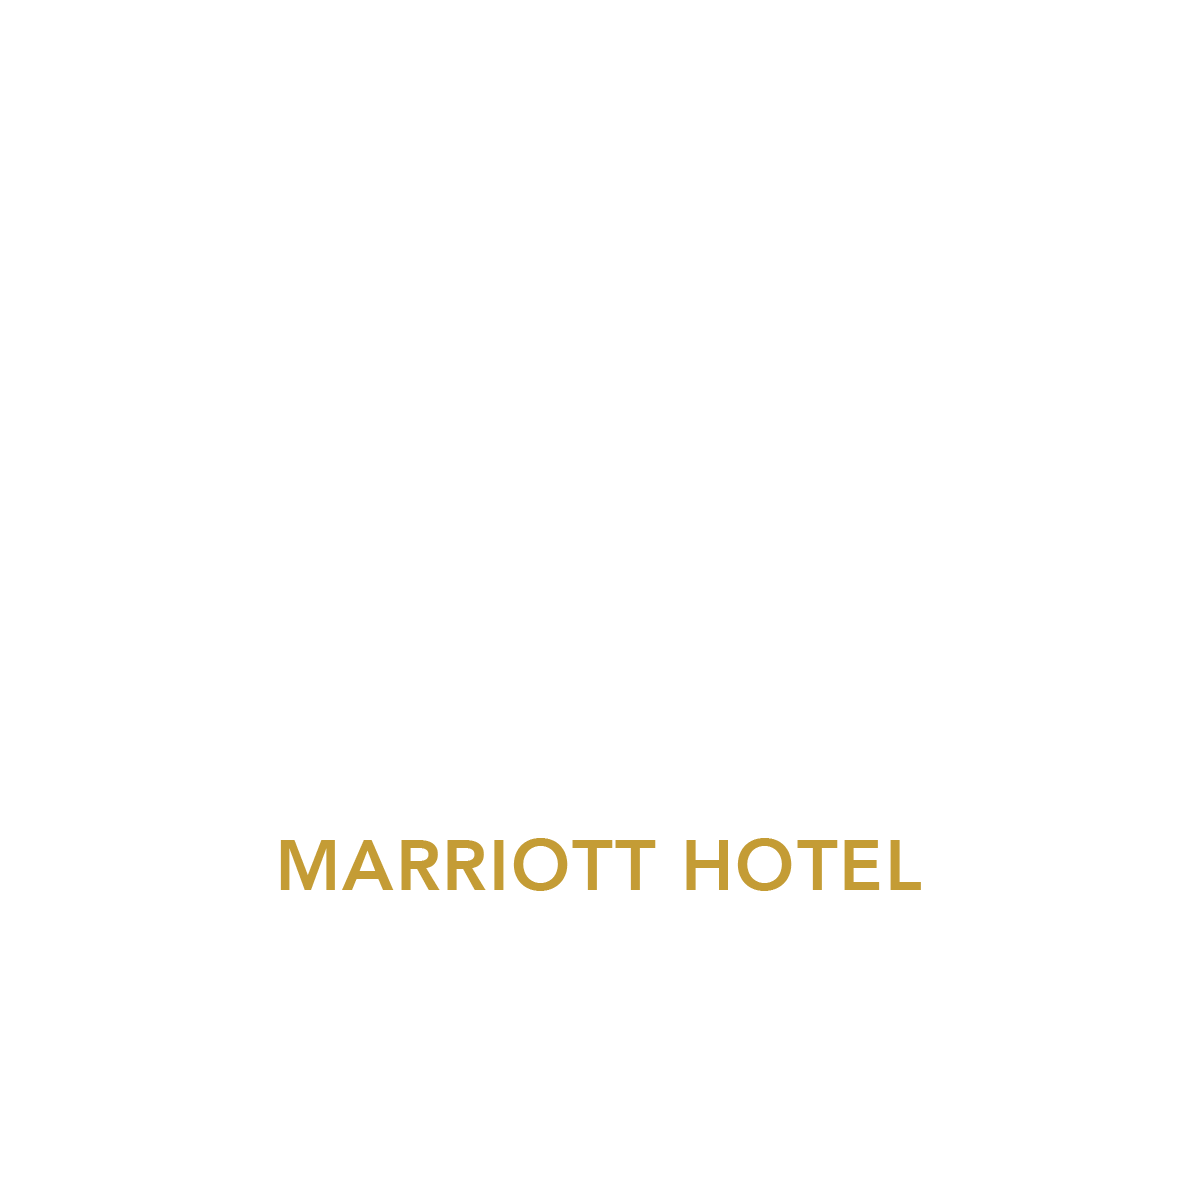 Two night stay at a hotel